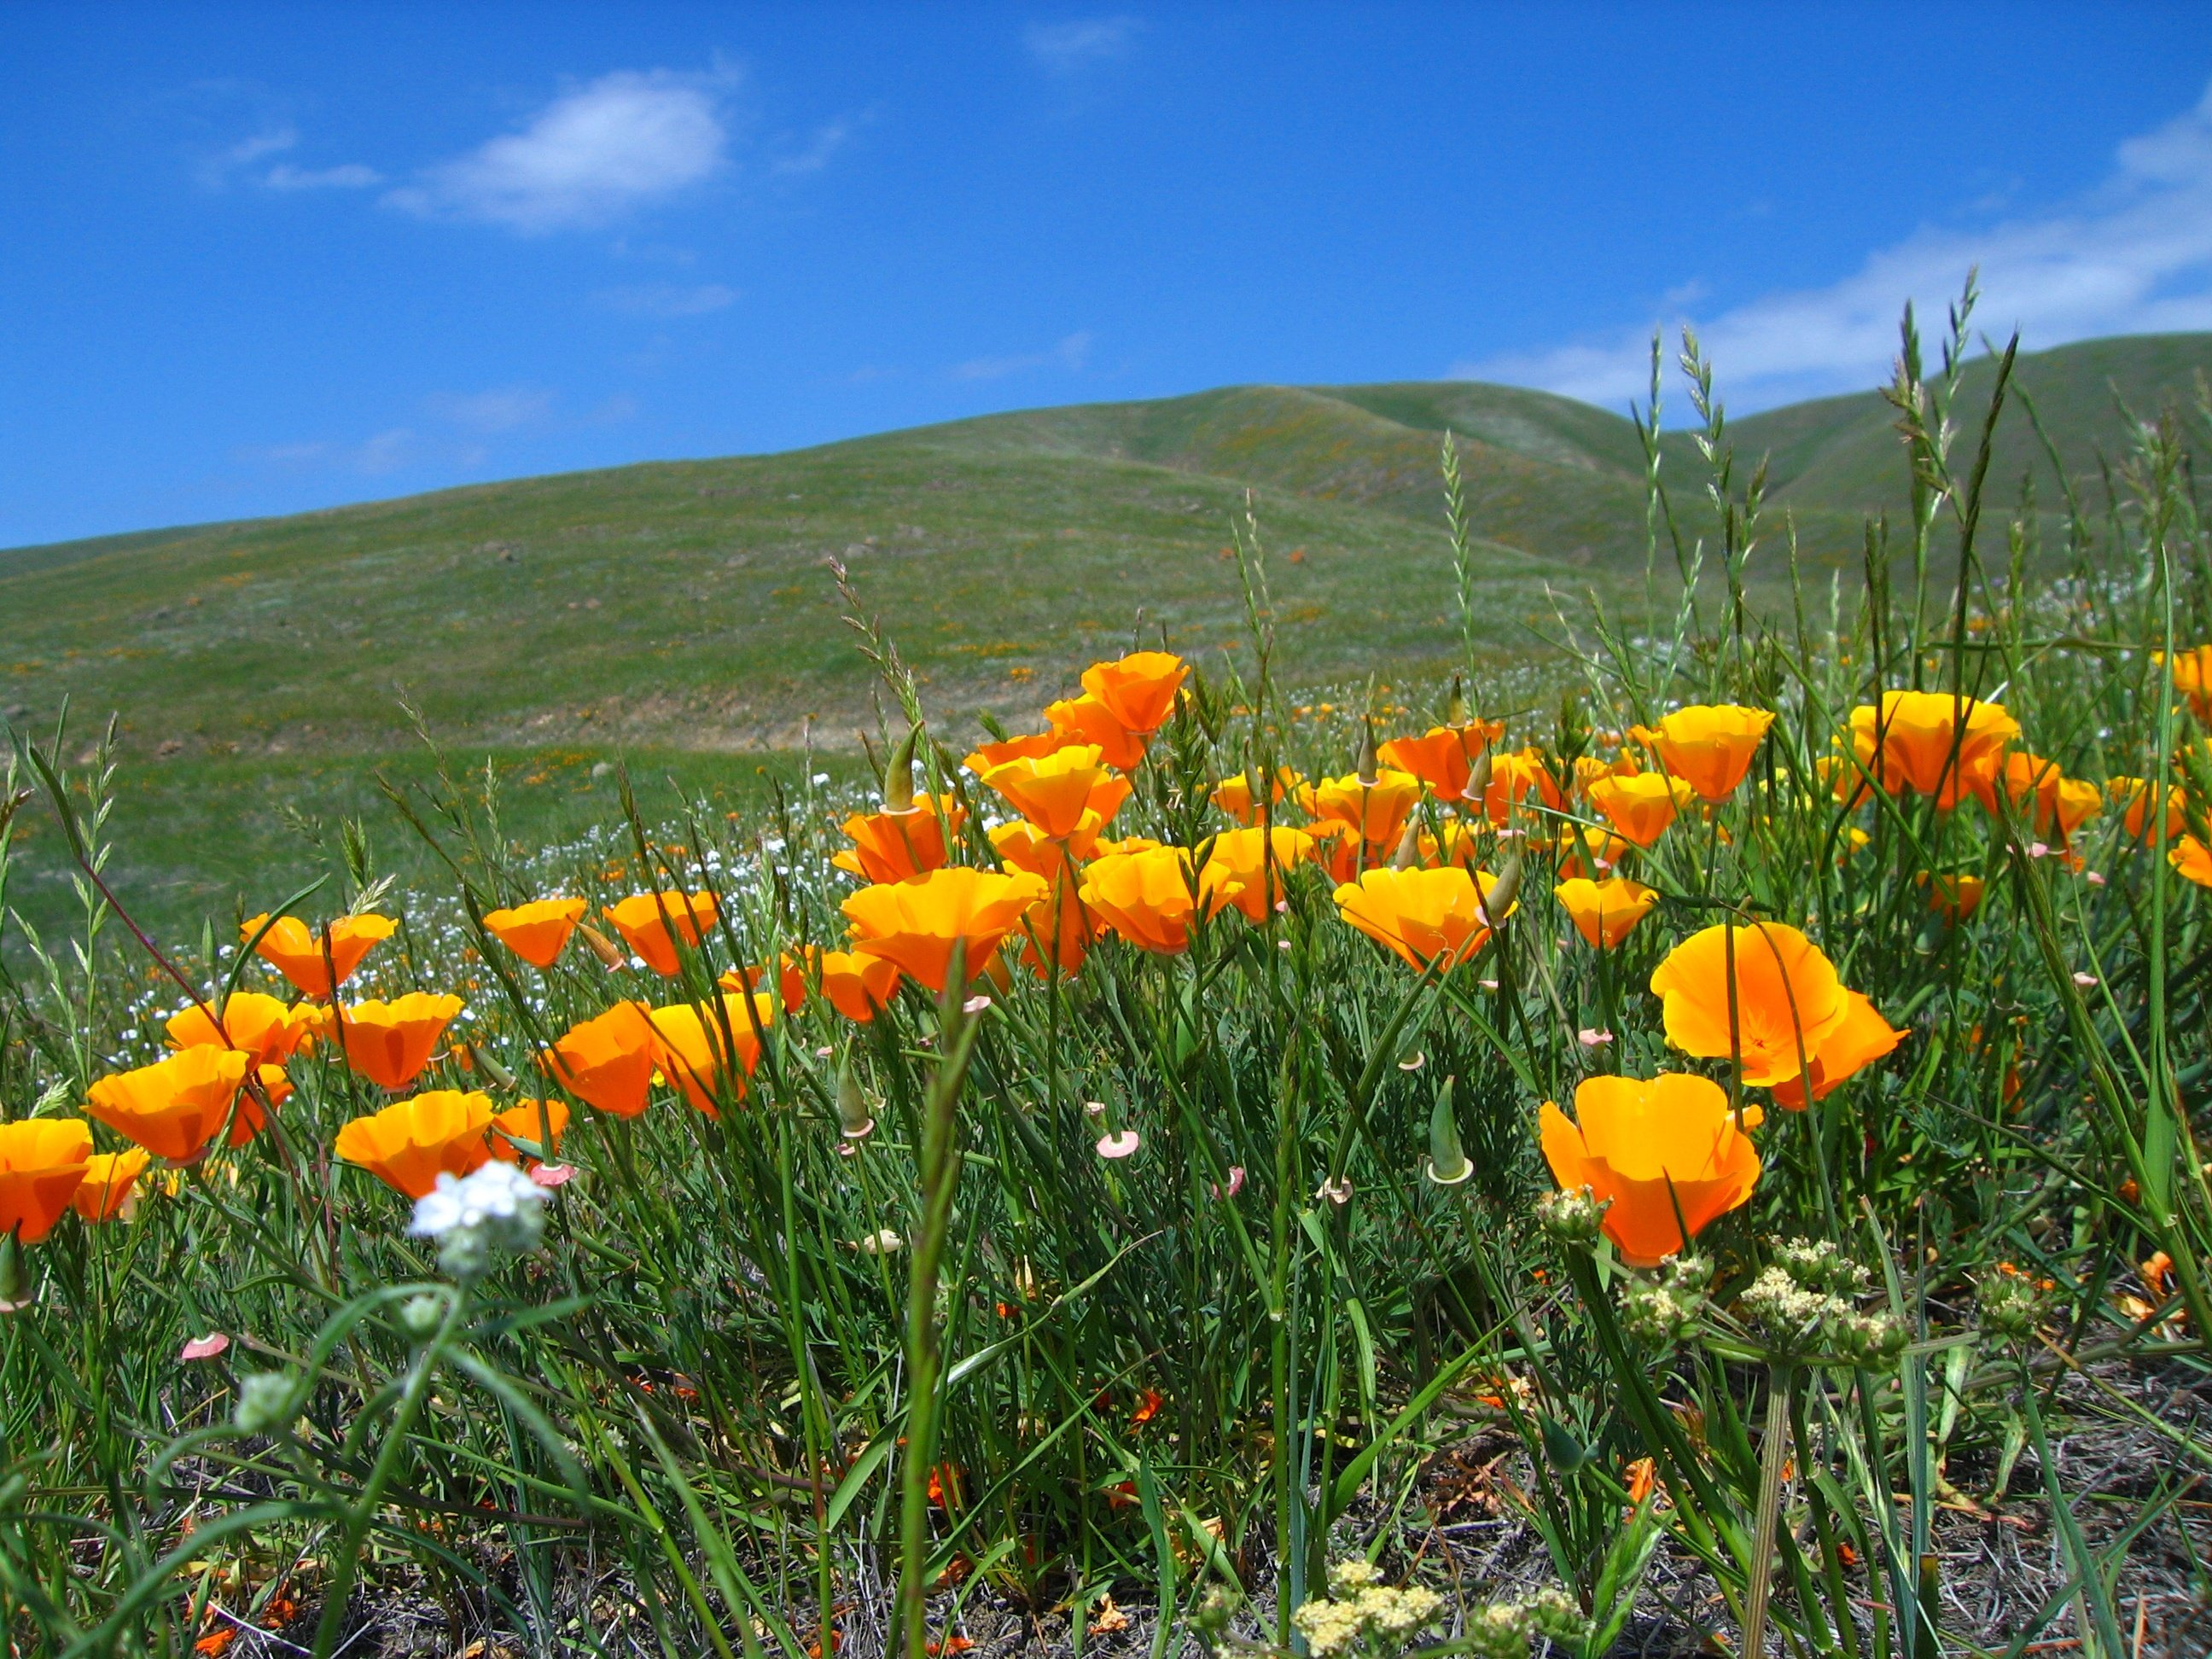 Coyote Ridge OSP - California Poppy - CH - APR-26-2012 - 1.jpg